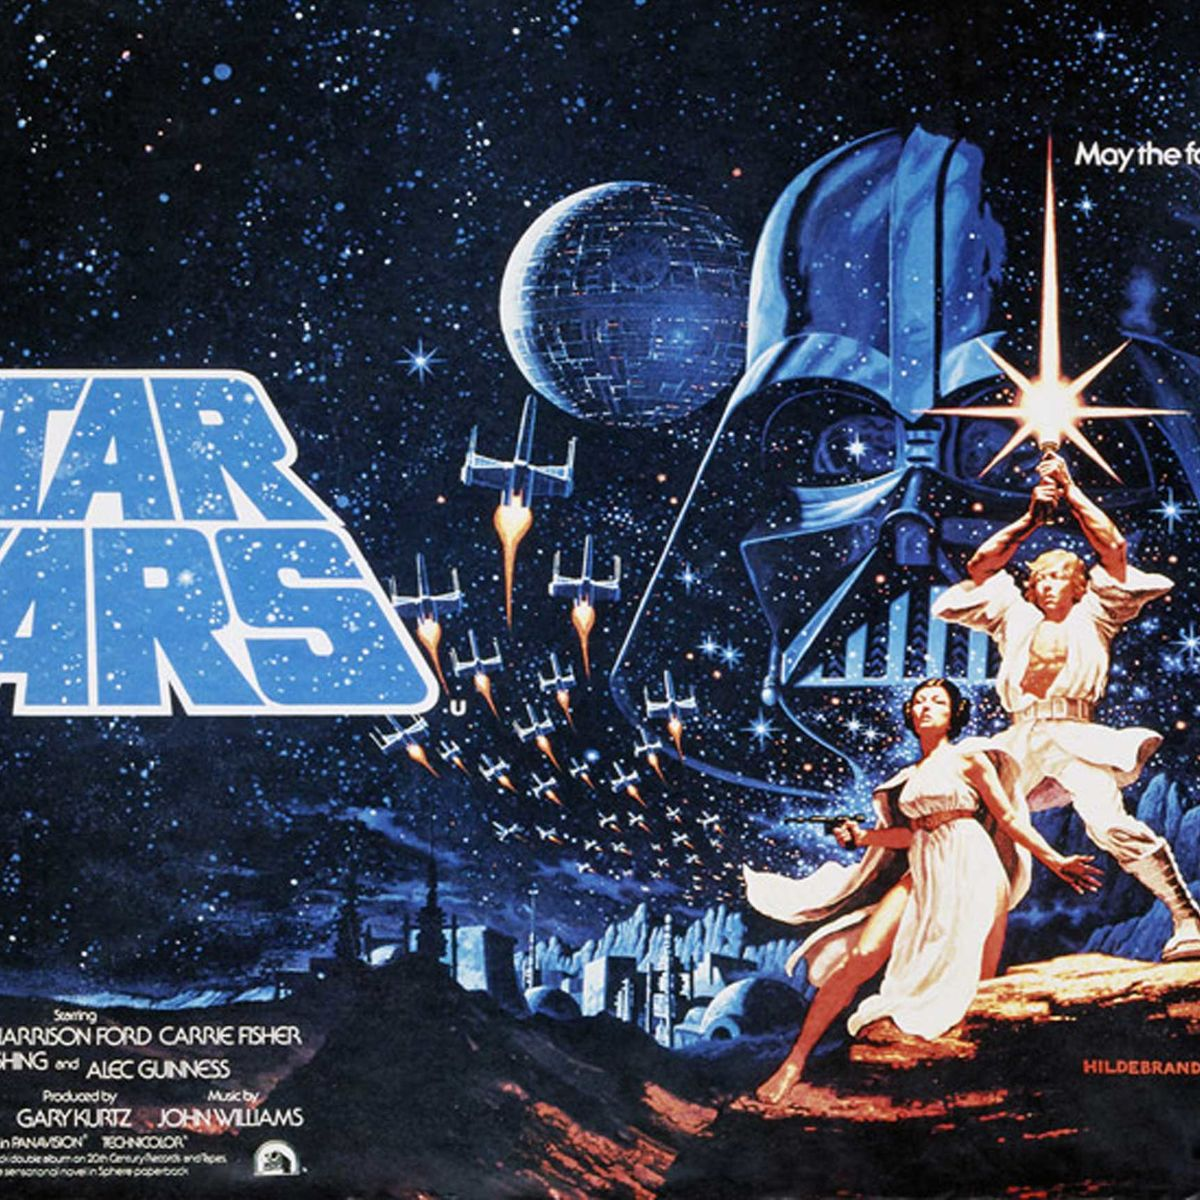 Star-Wars-Movie-Poster-1977-original_0.jpg